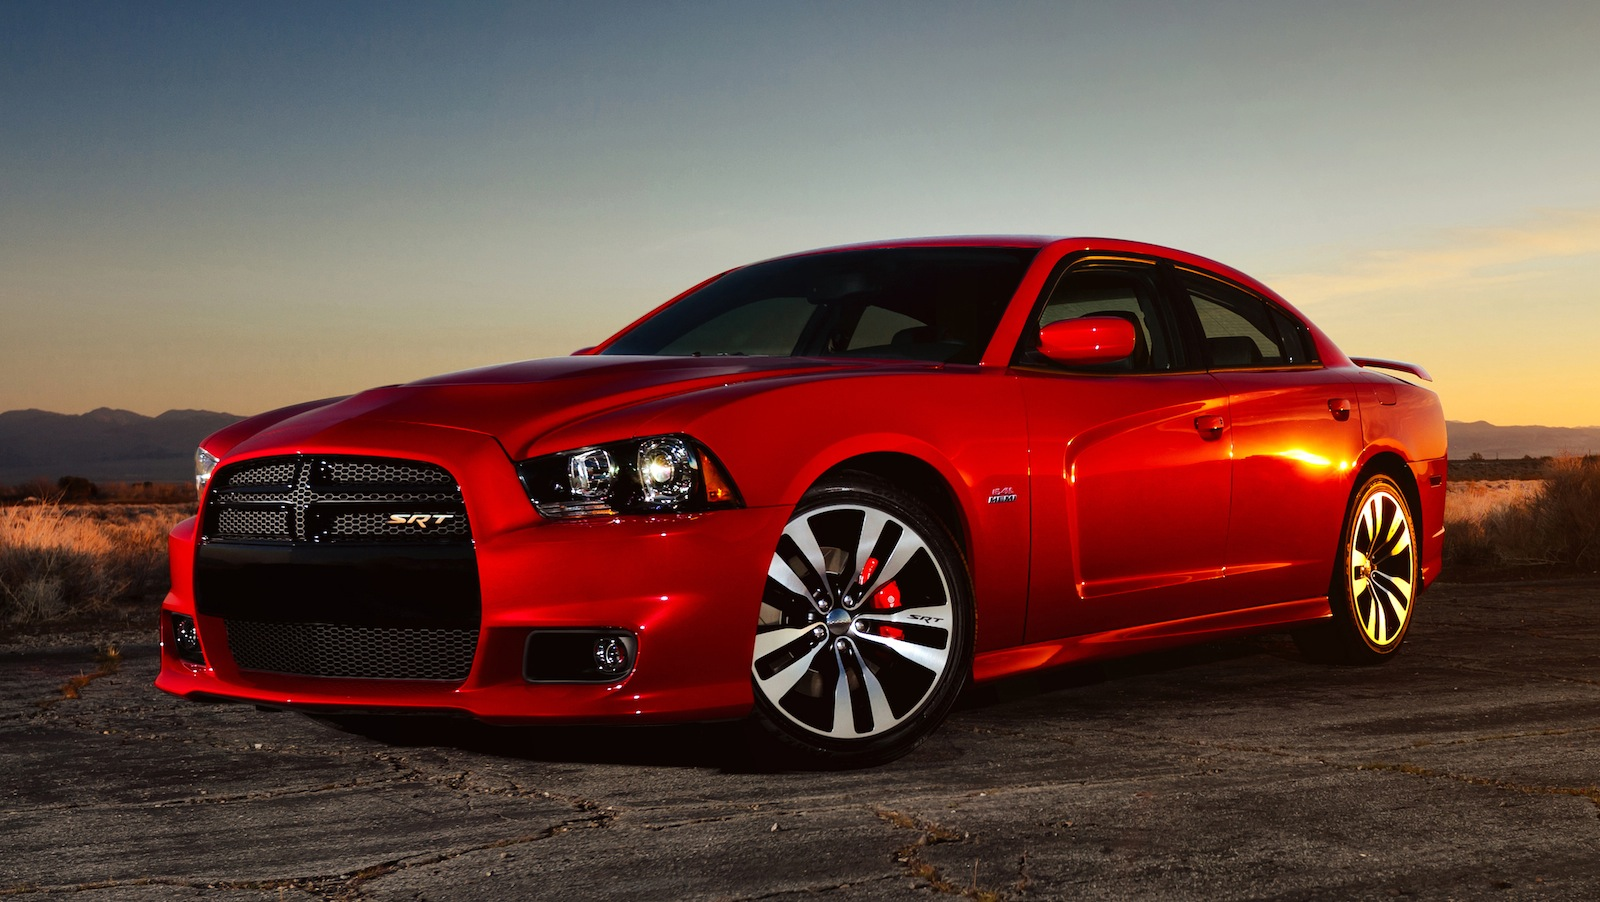 2014 Dodge Charger #6